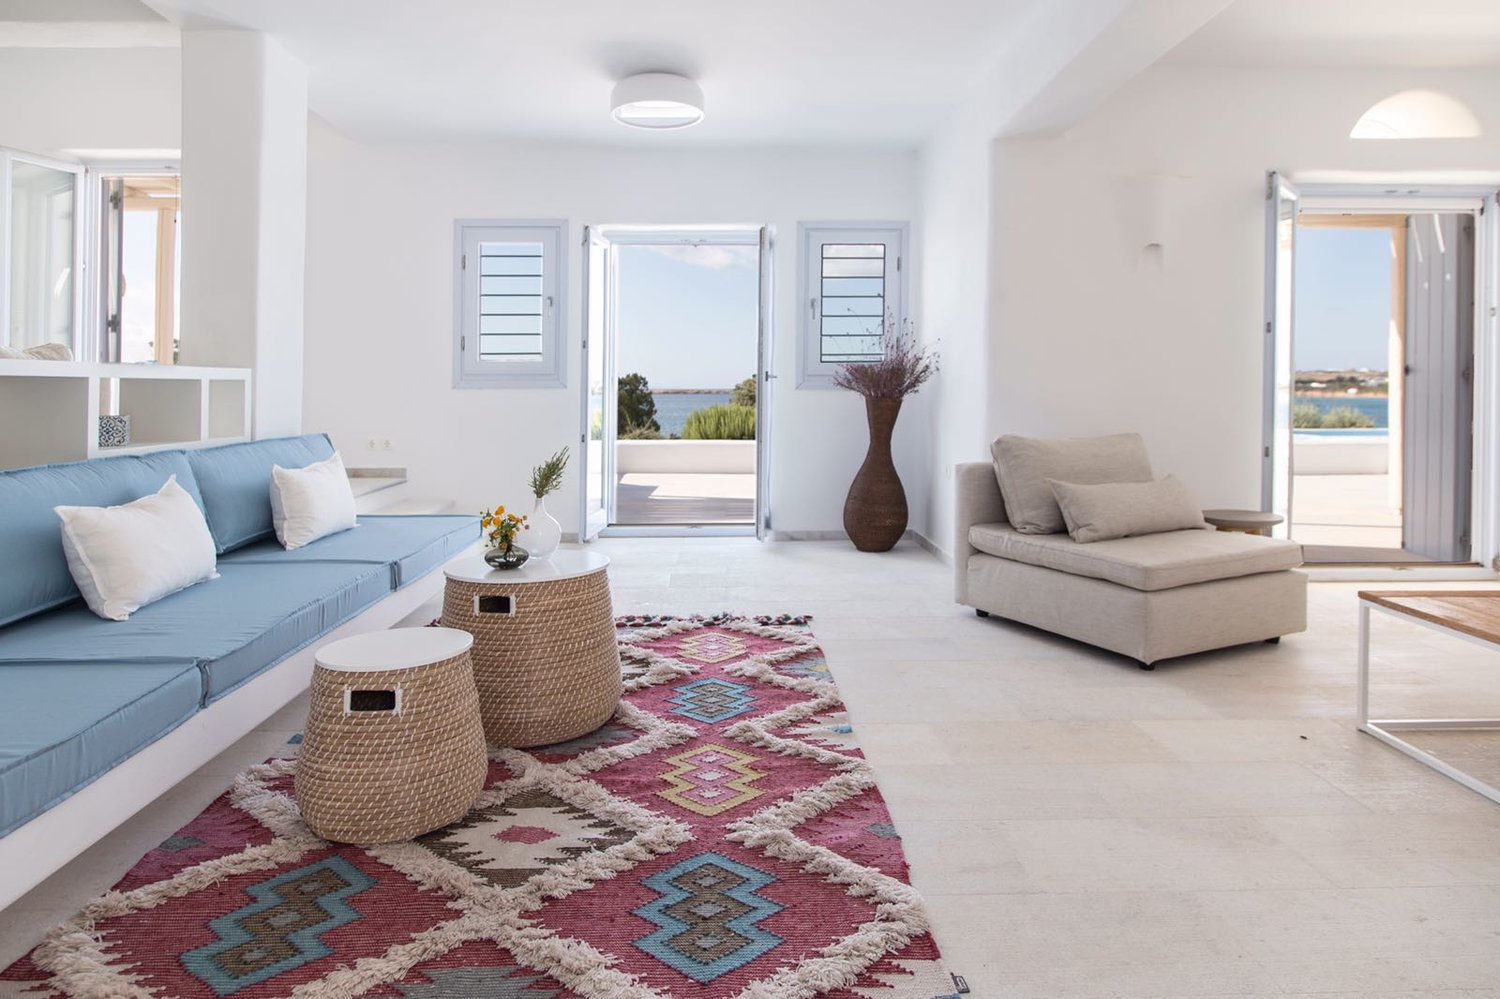 Traditional rugs look great in greek island house.